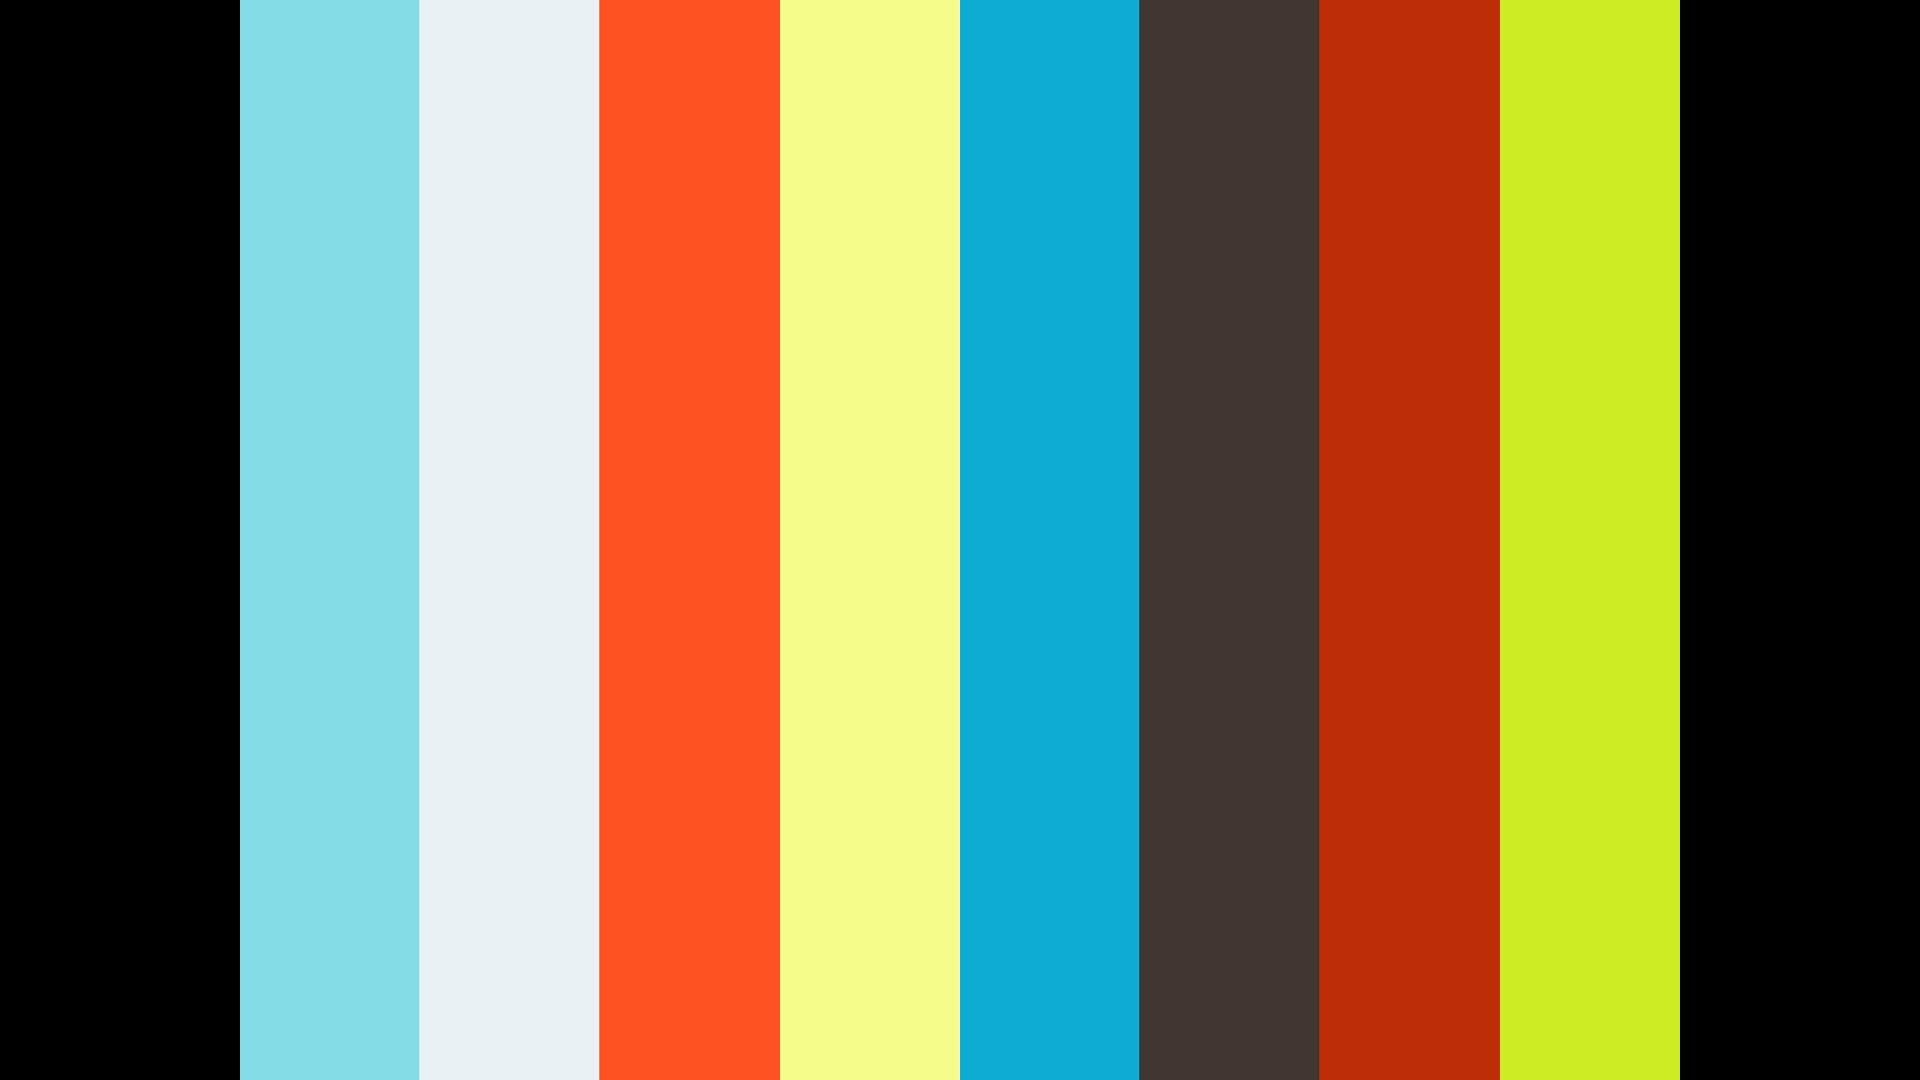 Session 6: Understanding the Cycle of Revival